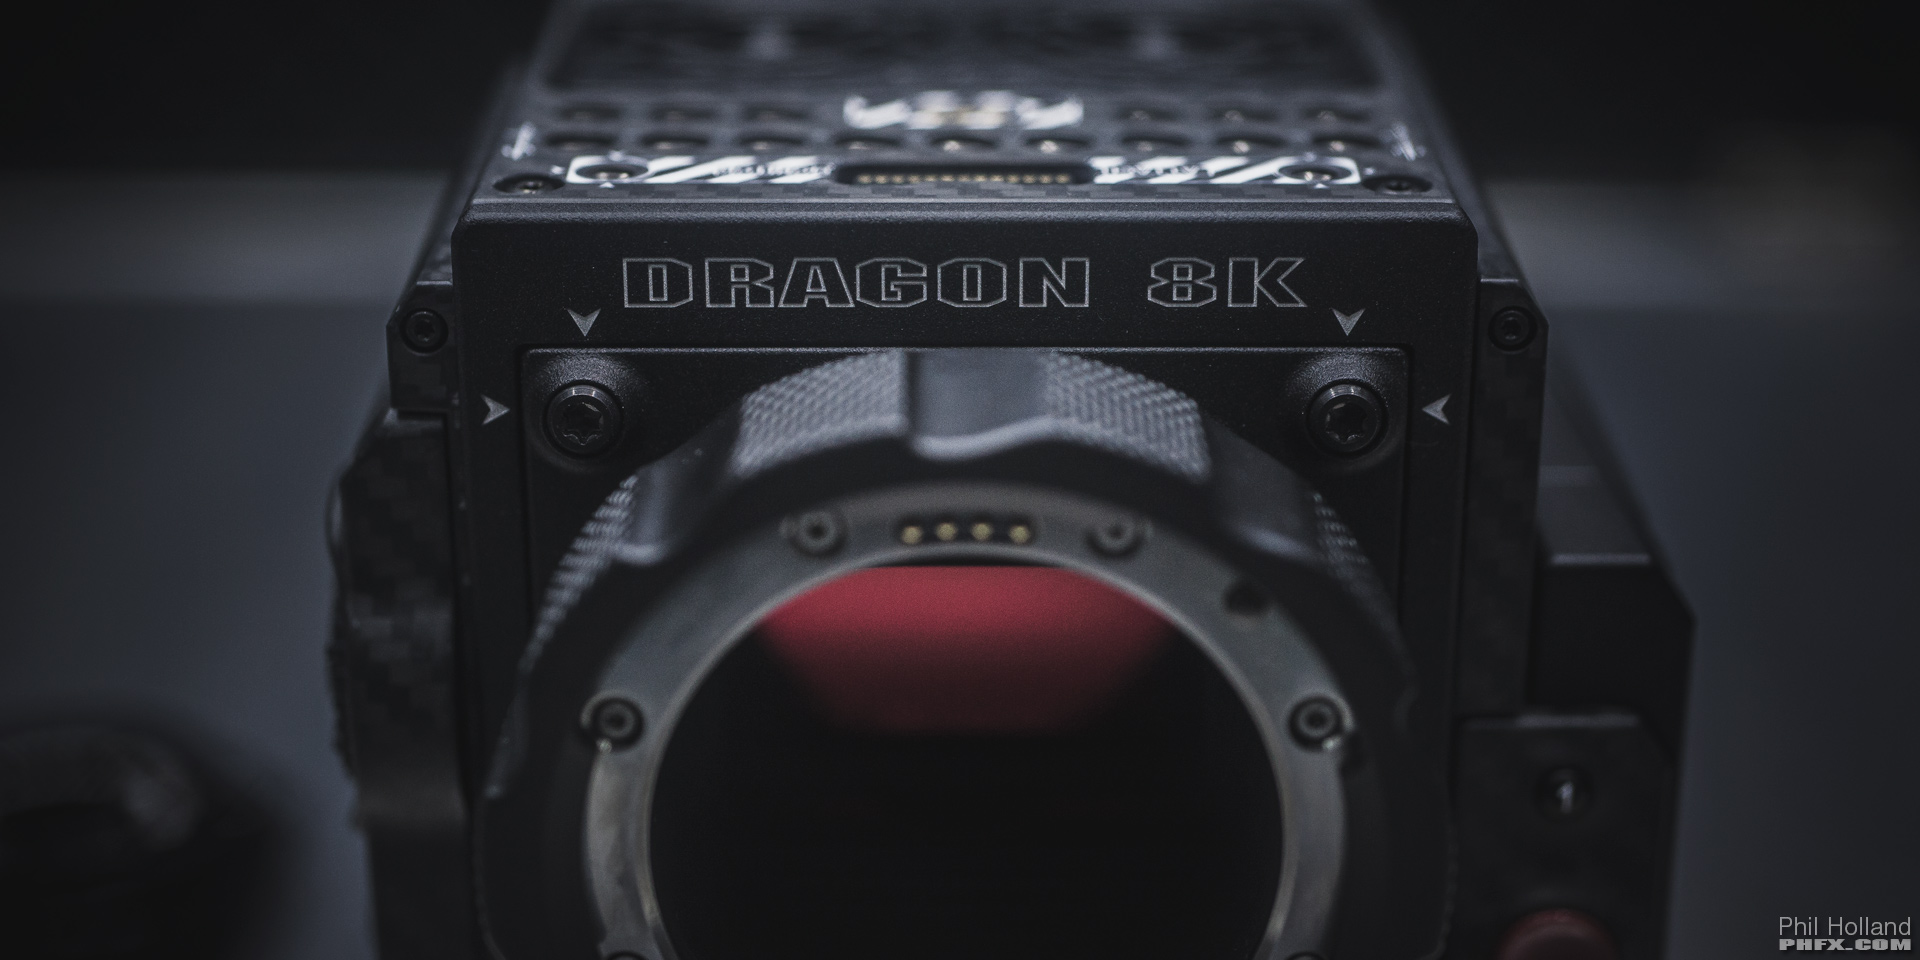 Cinegy claim that their Daniel 2 codec can decode 8K images at 1100fps!